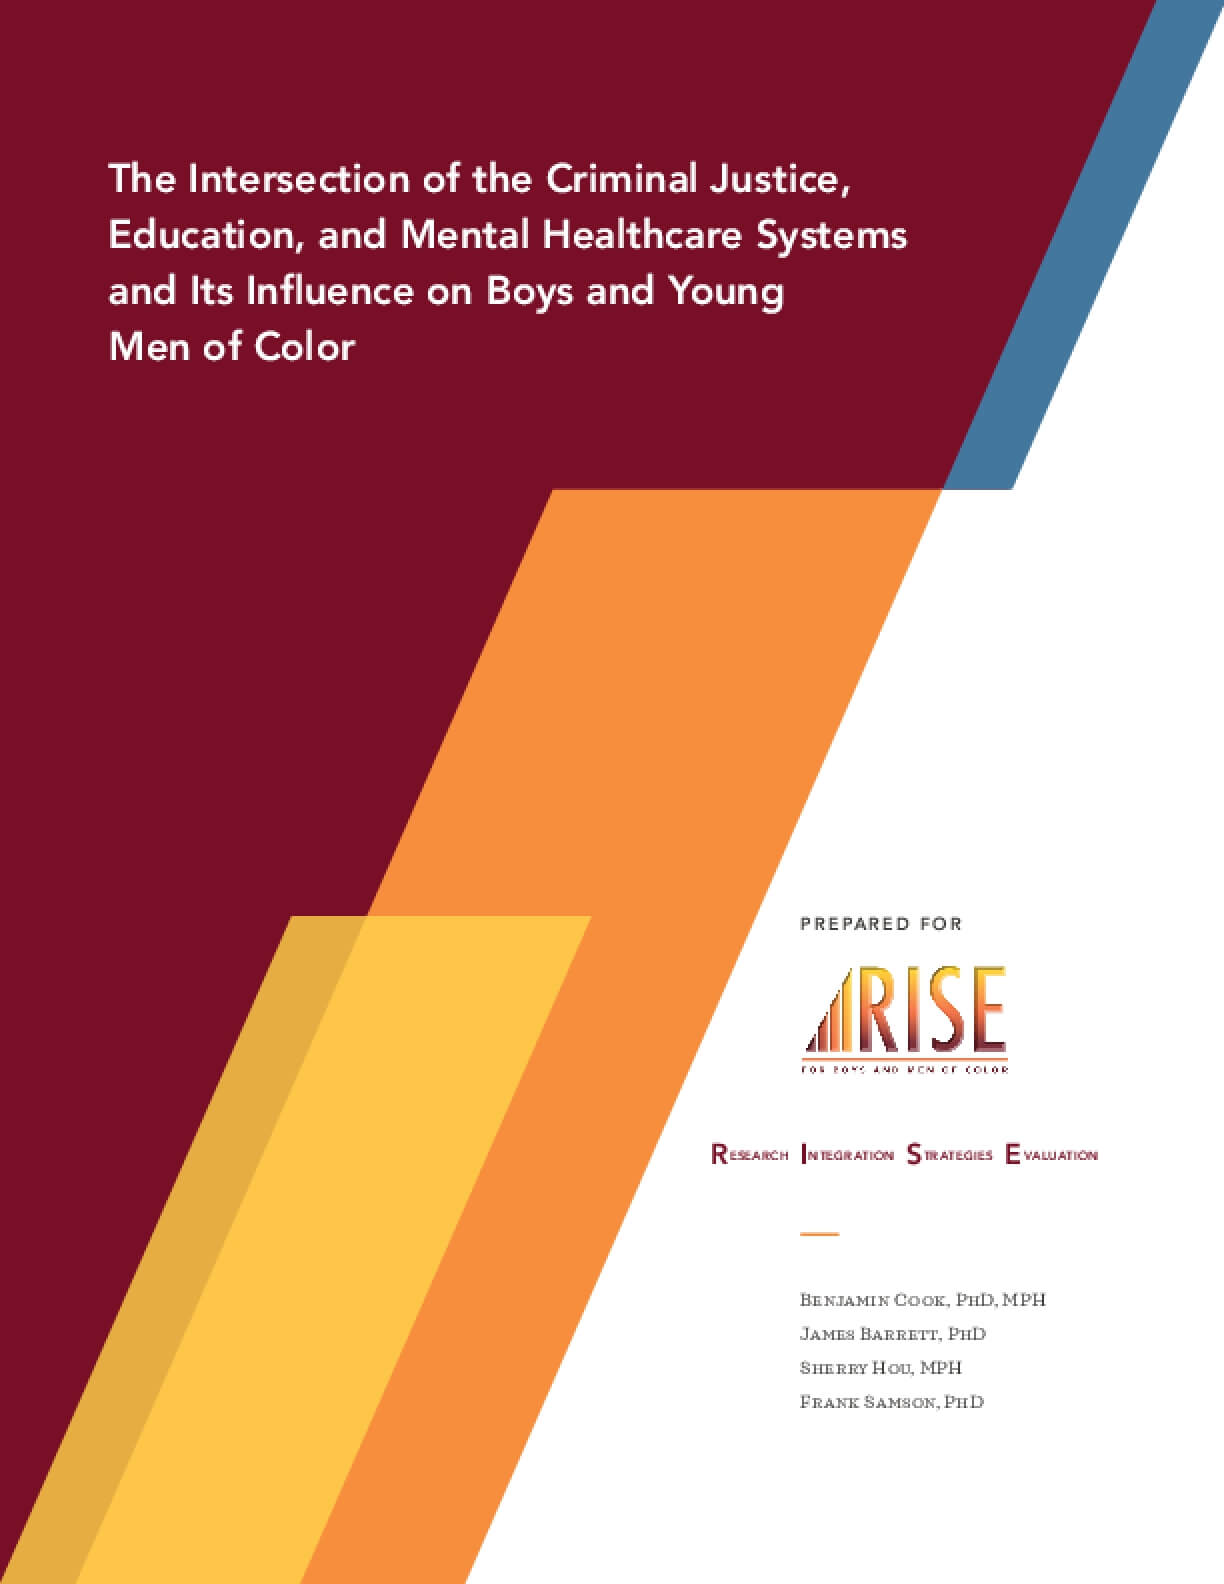 The Intersection of the Criminal Justice, Education, and Mental Healthcare Systems and Its Influence on Boys and Young Men of Color